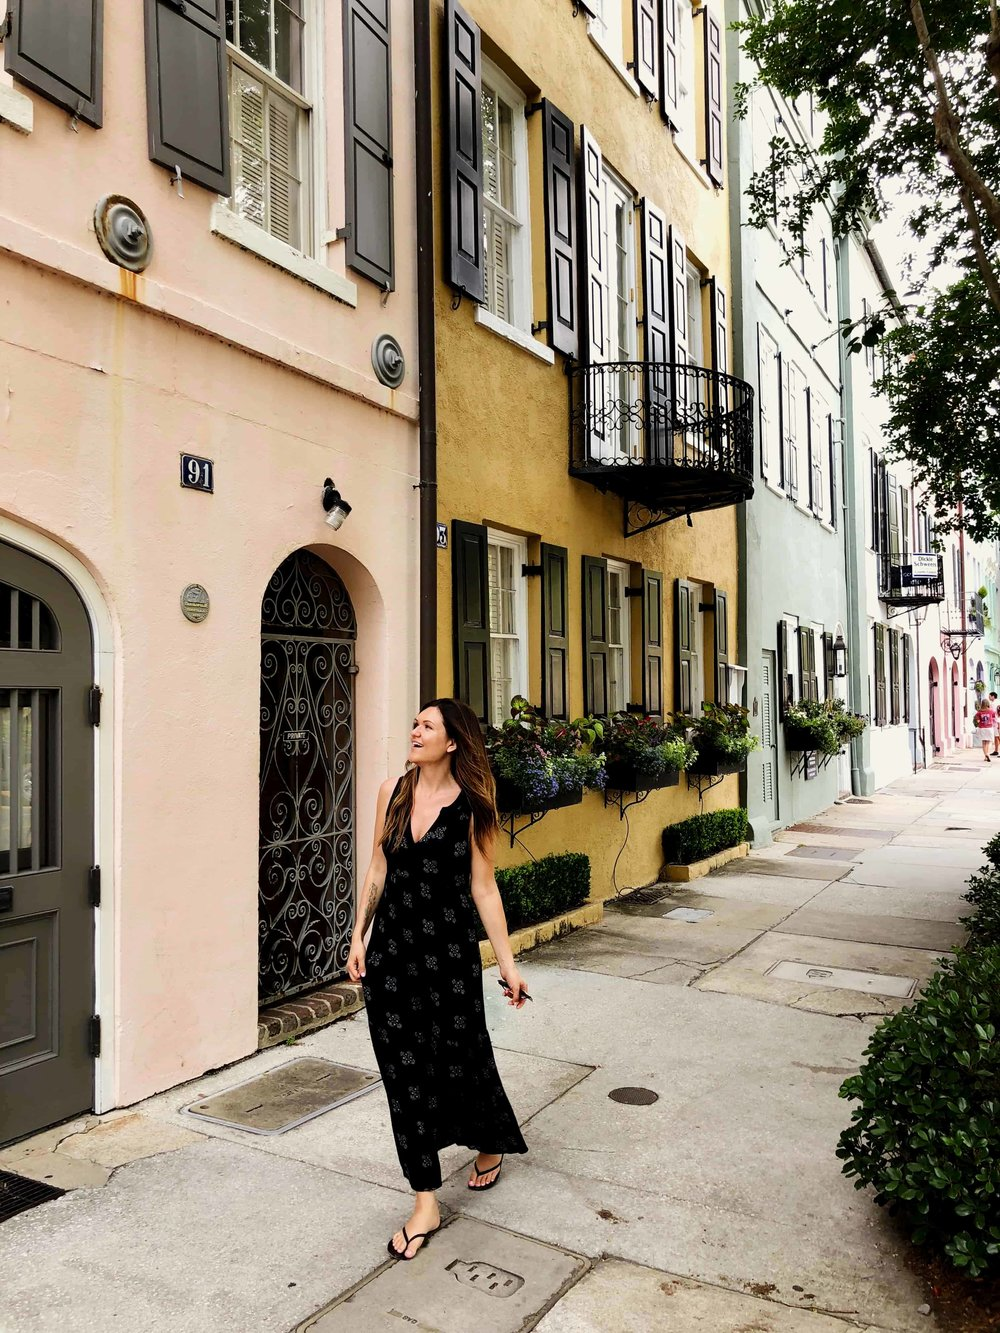 charleston-sc-city-guide-what-to-do-and-see-6.jpg